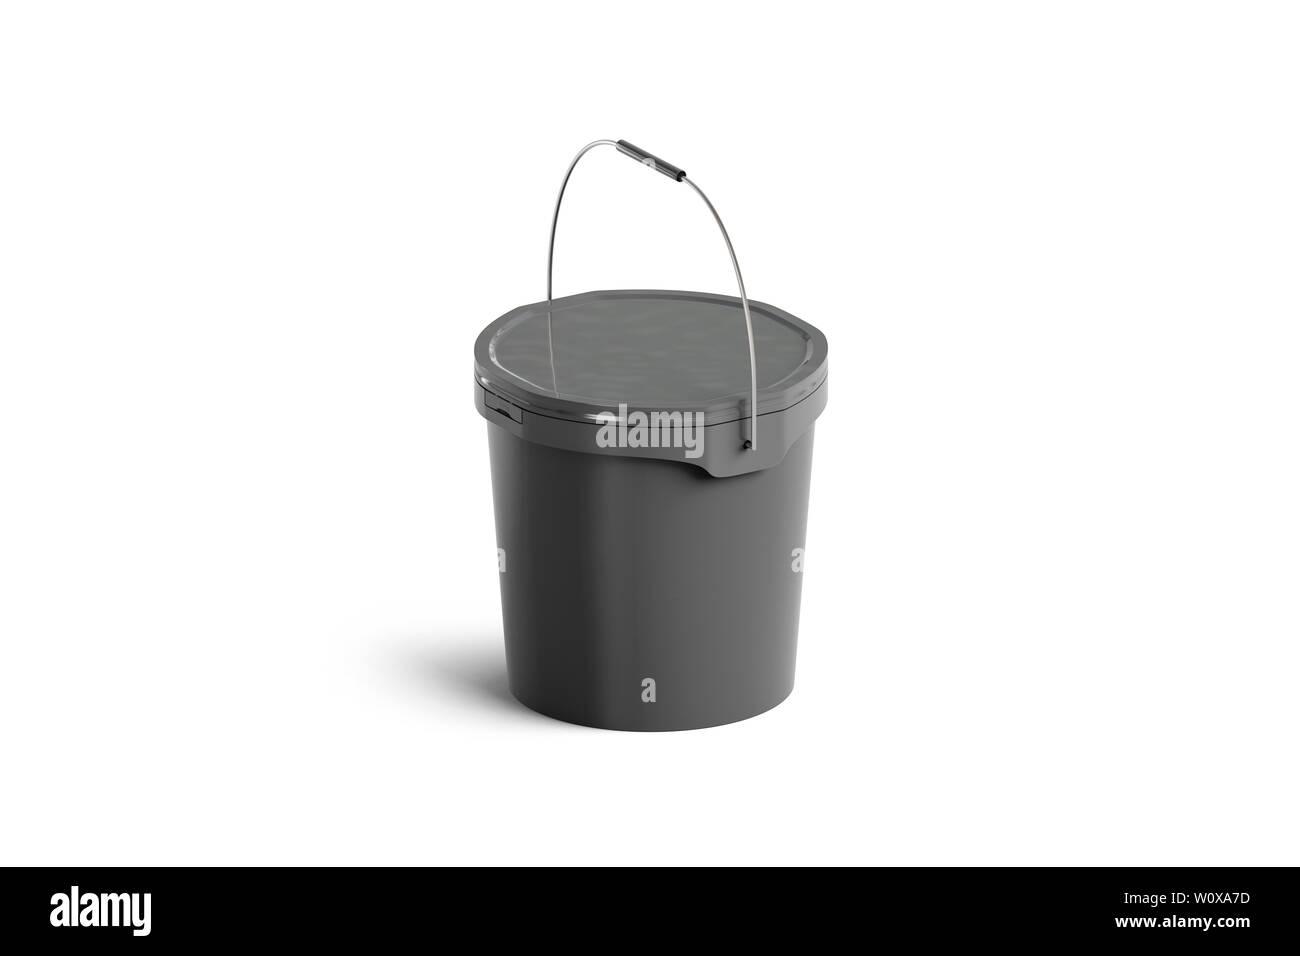 Blank Black Paint Bucket With Handle Mock Up Isolated Side View 3d Rendering Sealed Industrial Basin Mockup Empty Plastic Storage Container Versa Stock Photo Alamy